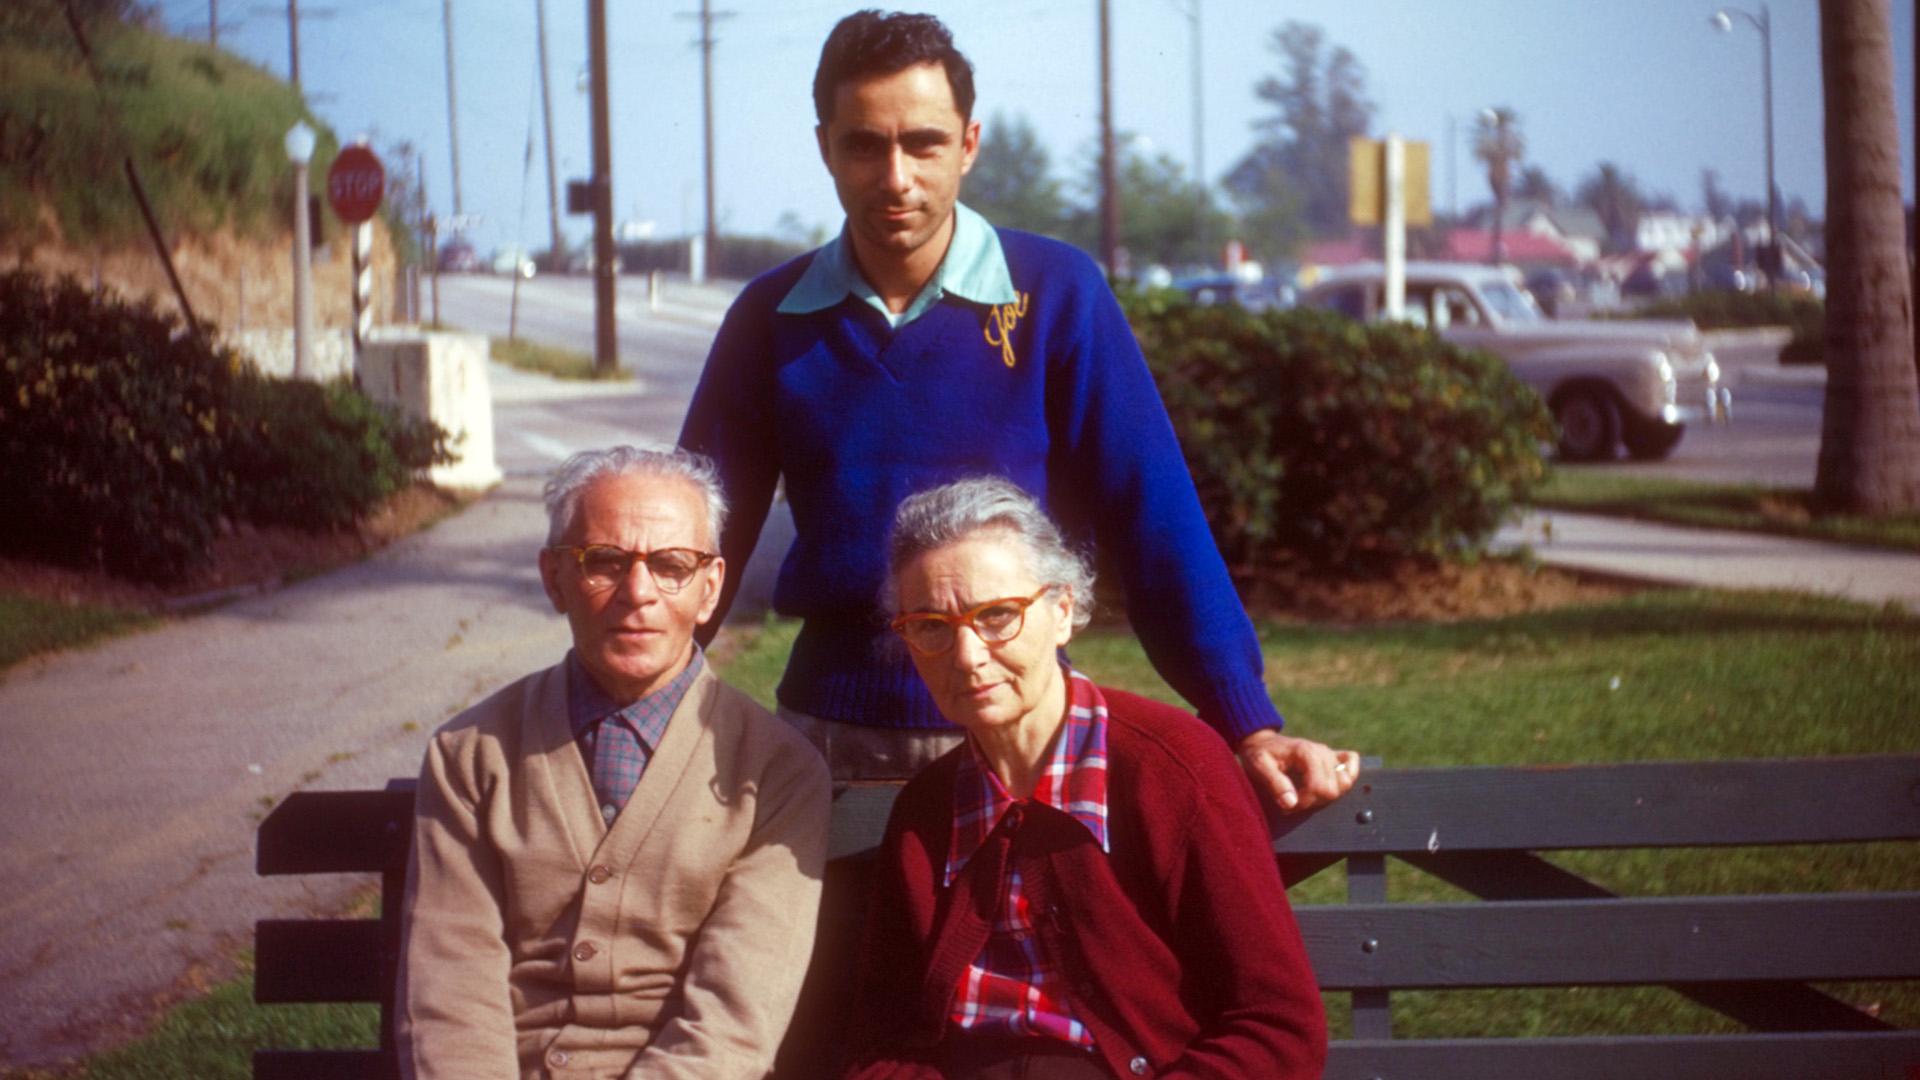 two senior citizens sitting on a park bench with their son standing behind them